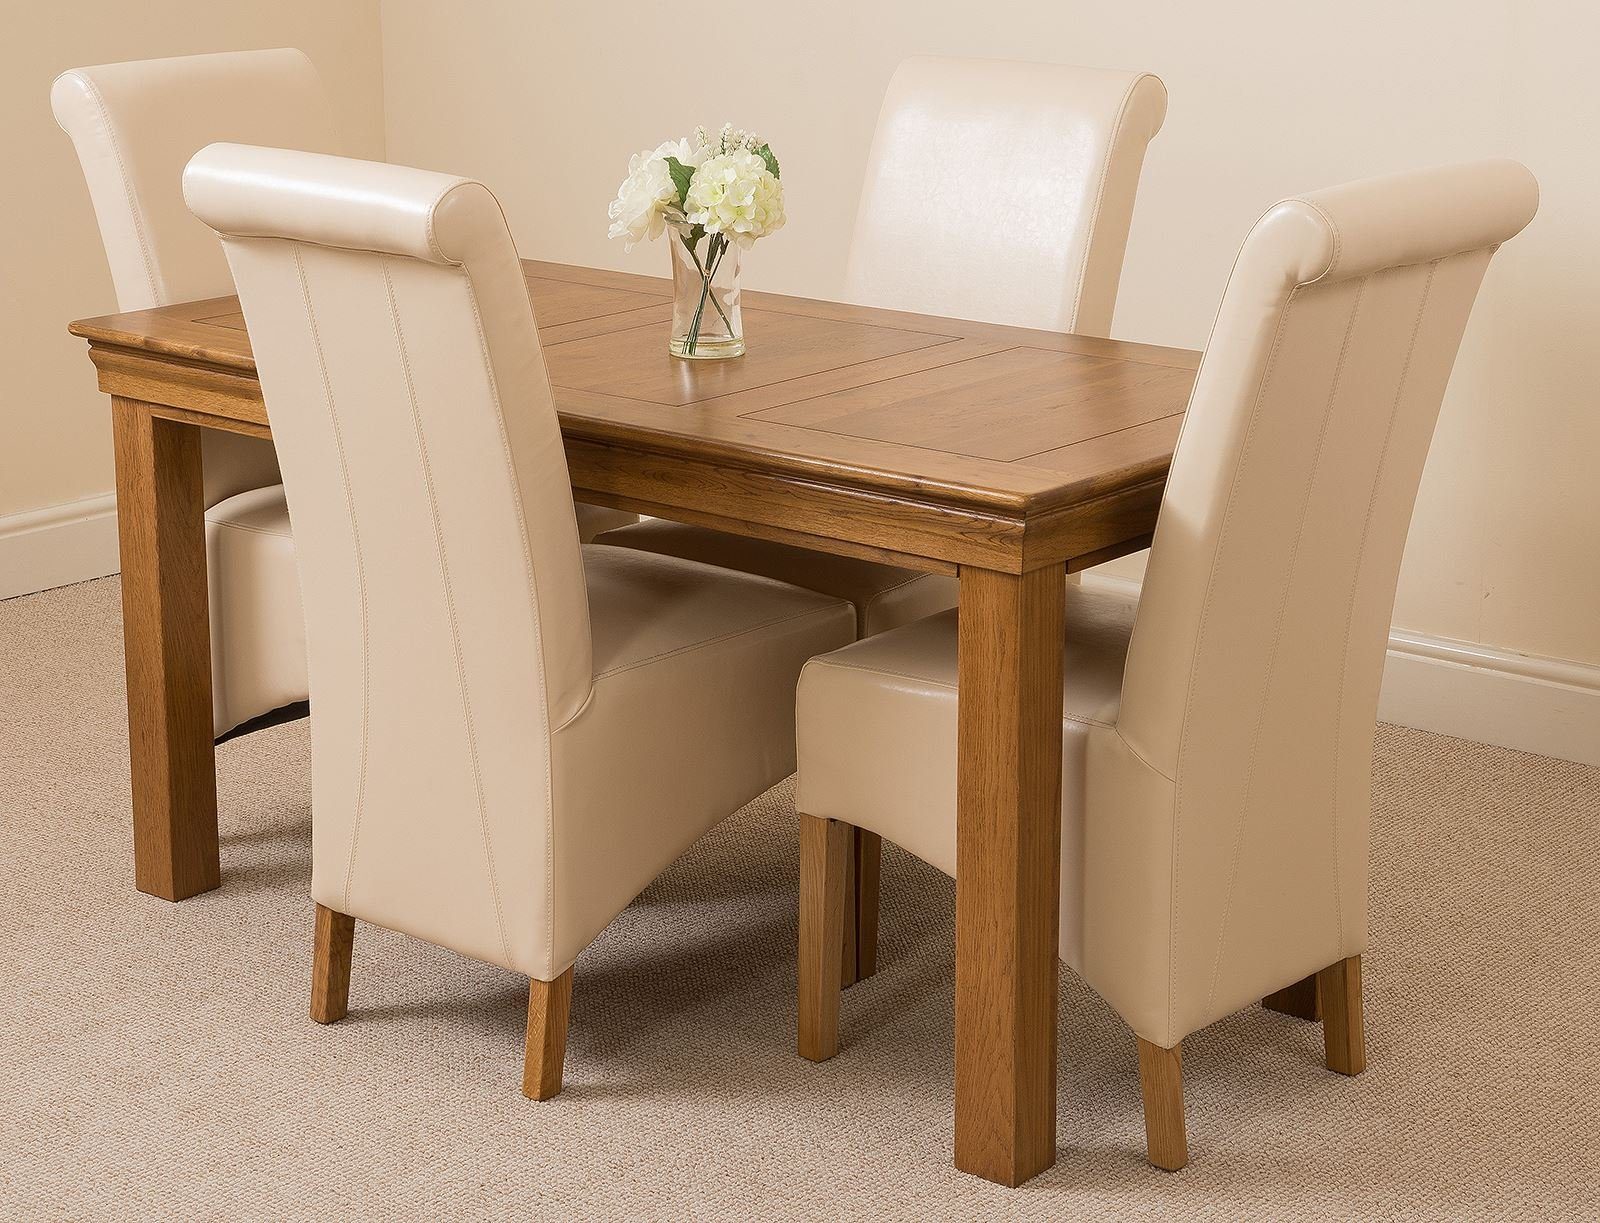 81Bd6o37vDL - French Rustic Solid Oak 150 cm Dining Table with 4 or 6 Montana Dining Chairs